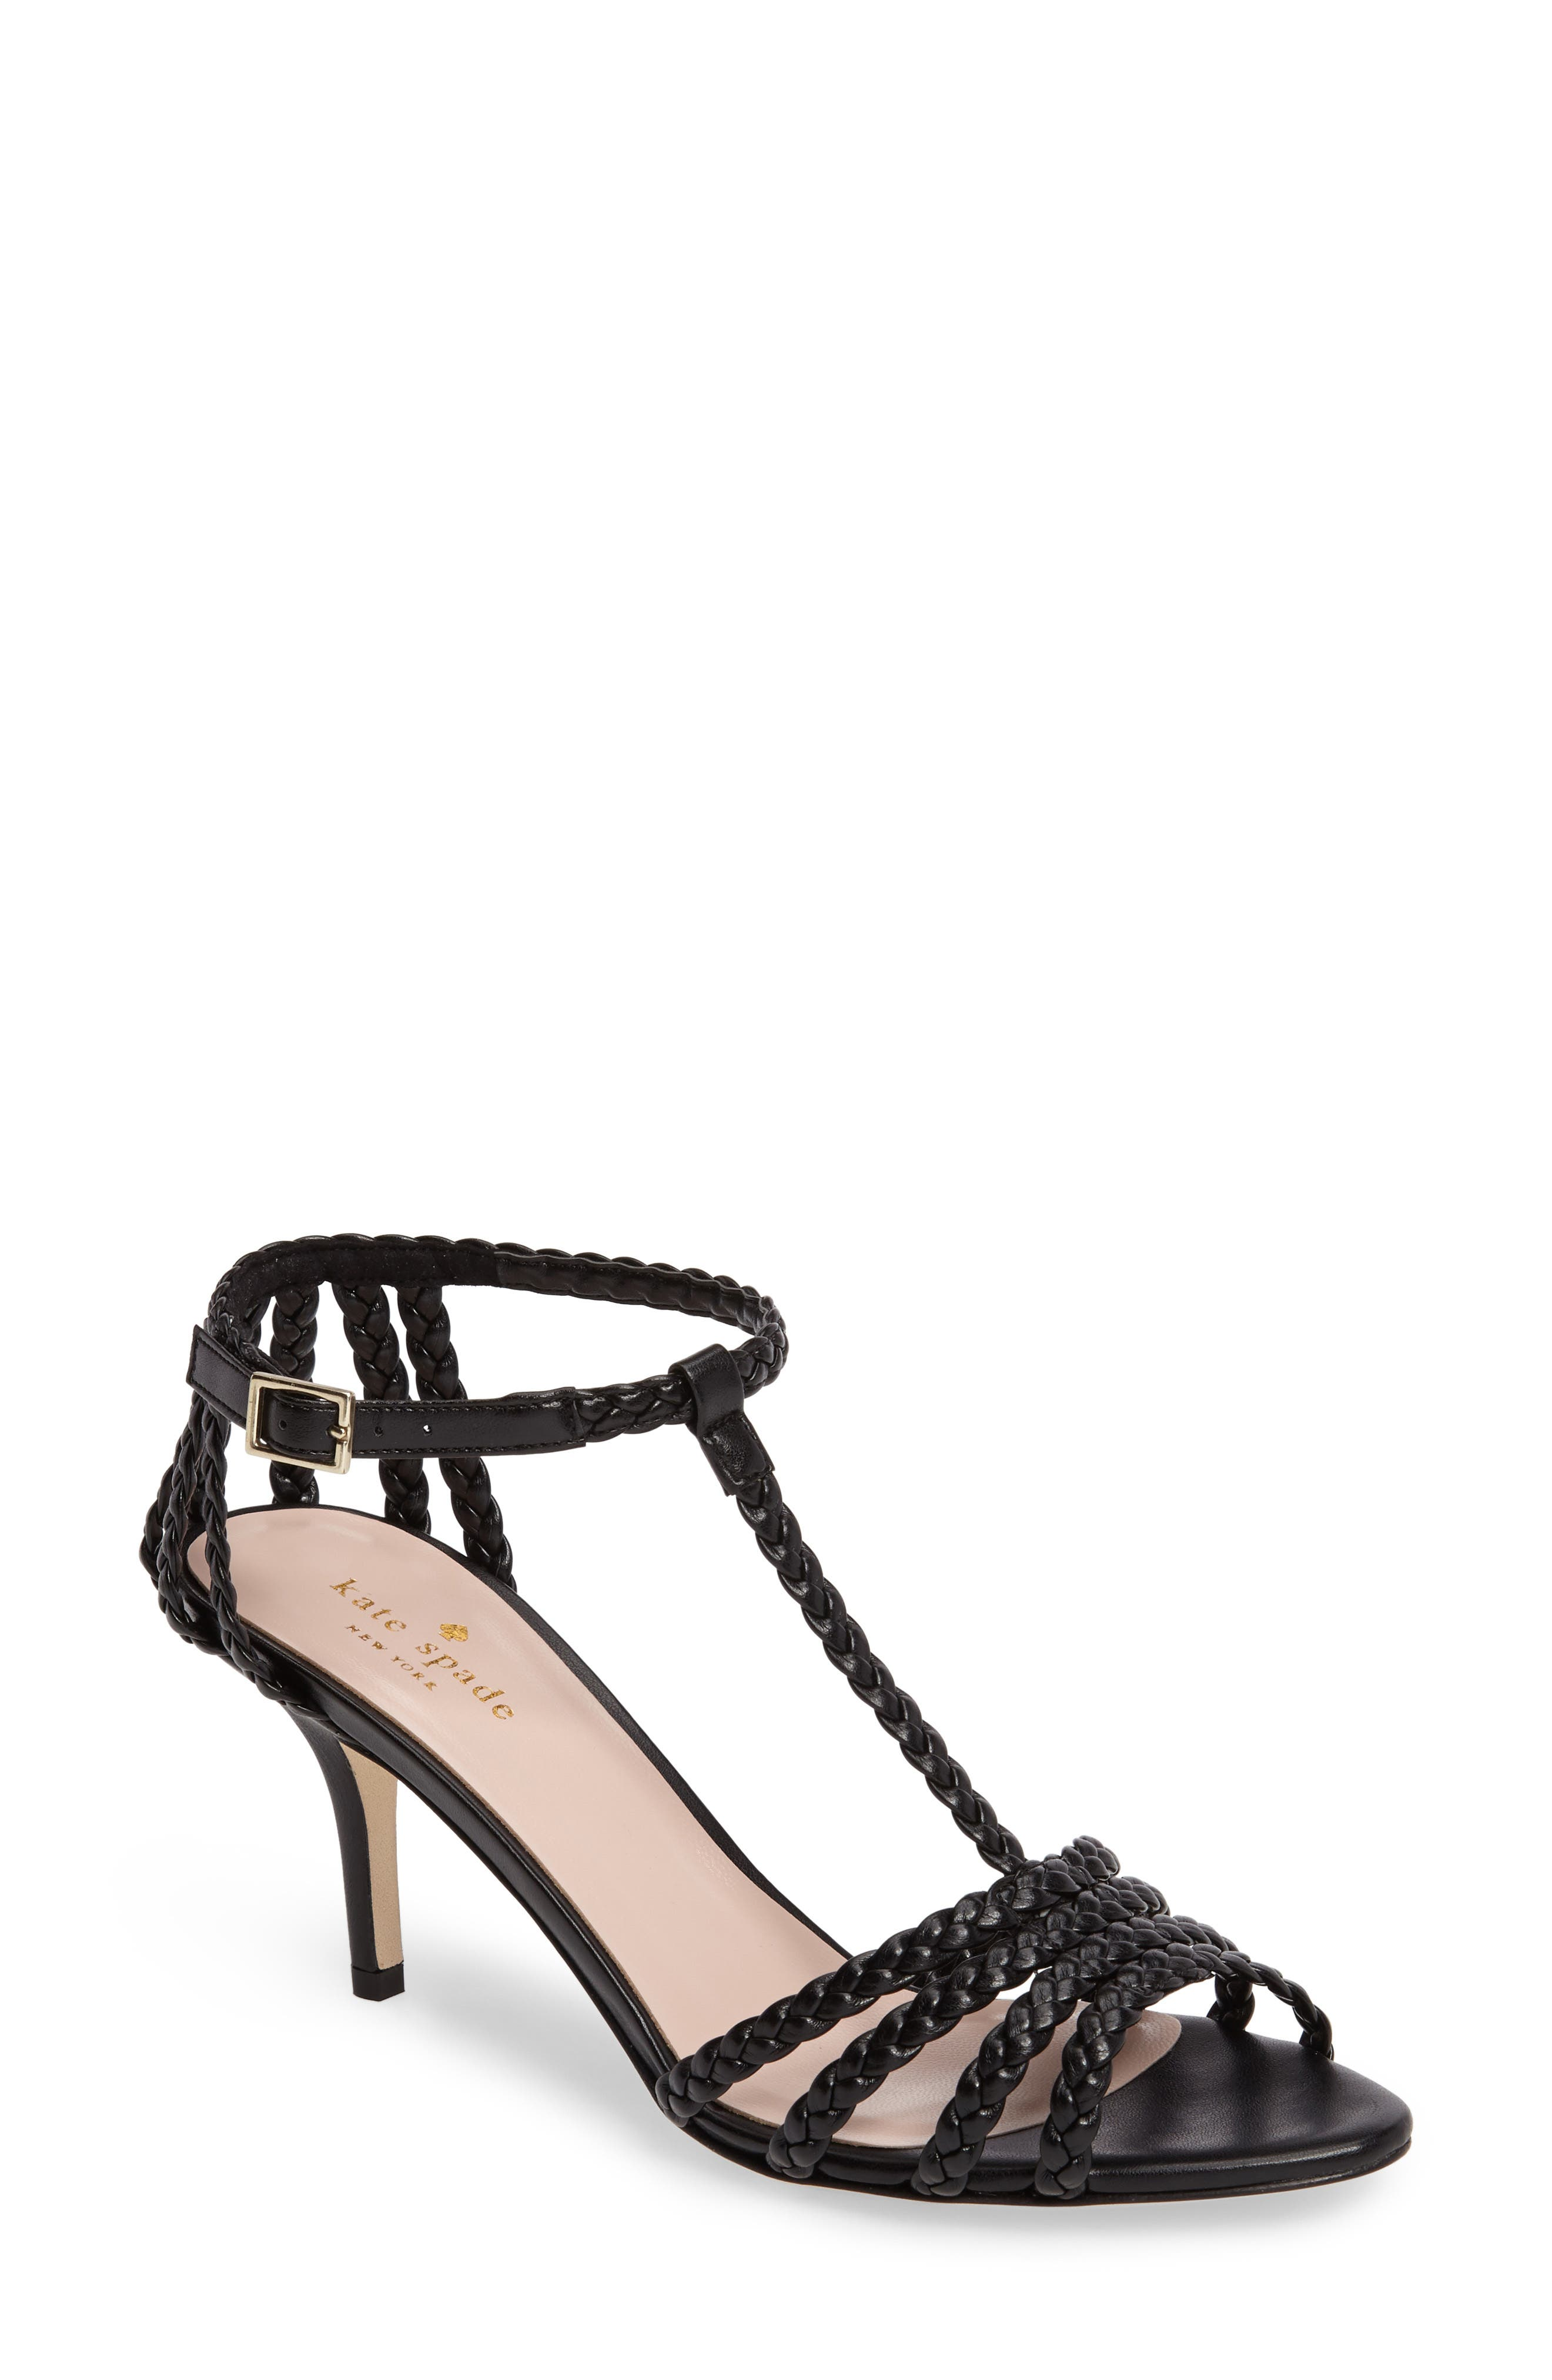 Main Image - kate spade new york sullivan strappy sandal (Women)